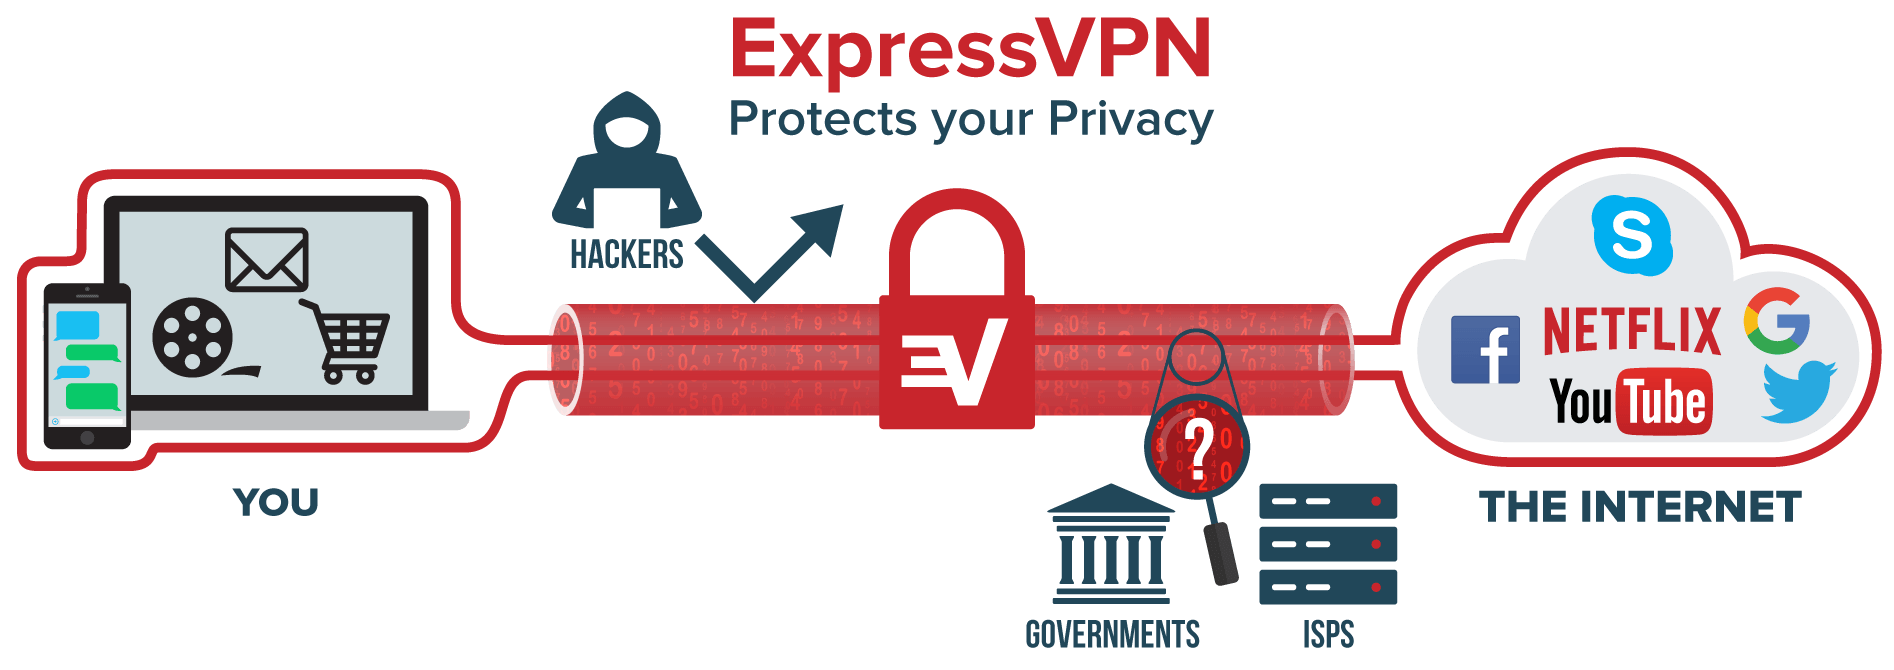 ExpressVPN tunnel